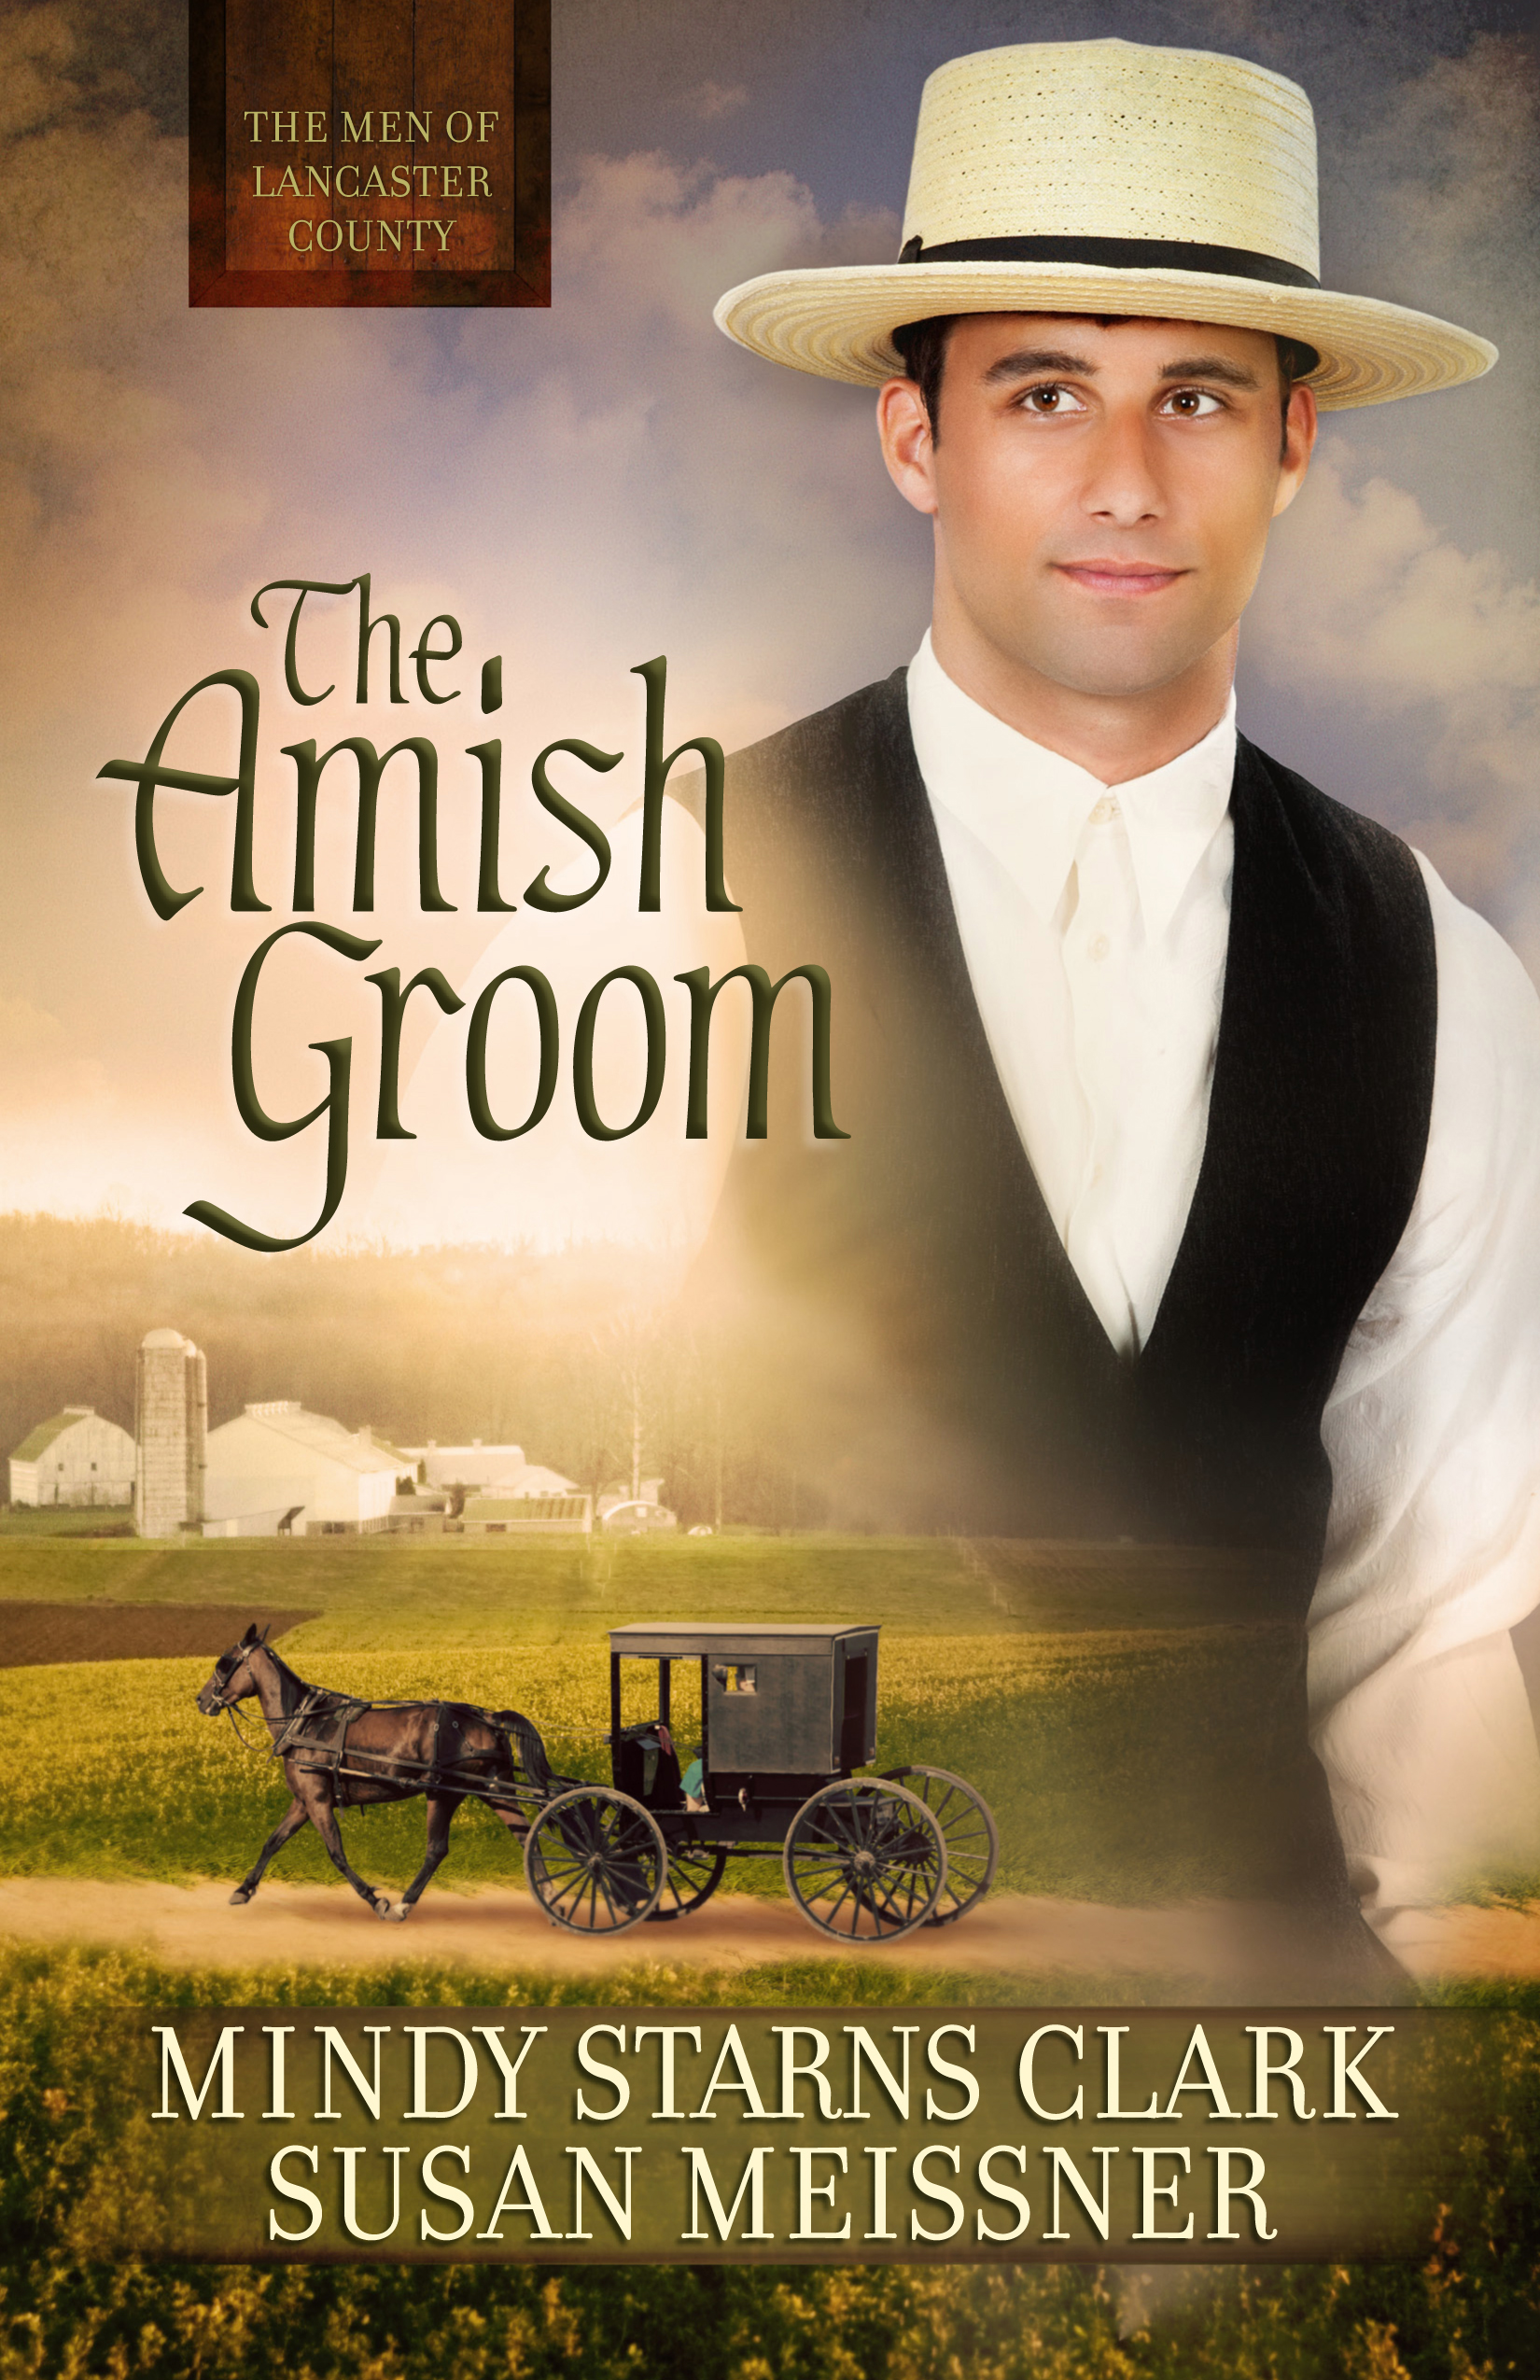 The Amish Groom · Image Gallery